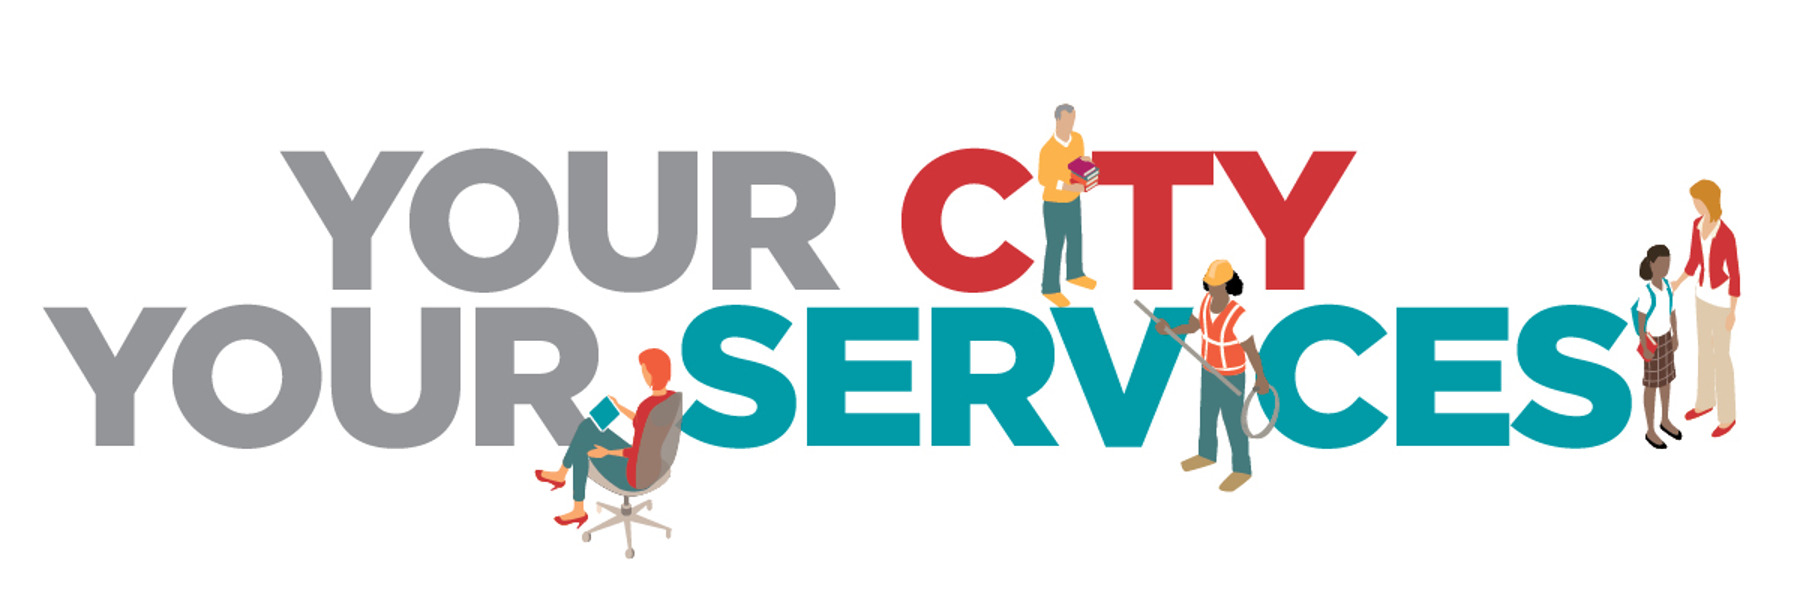 Your city, your services